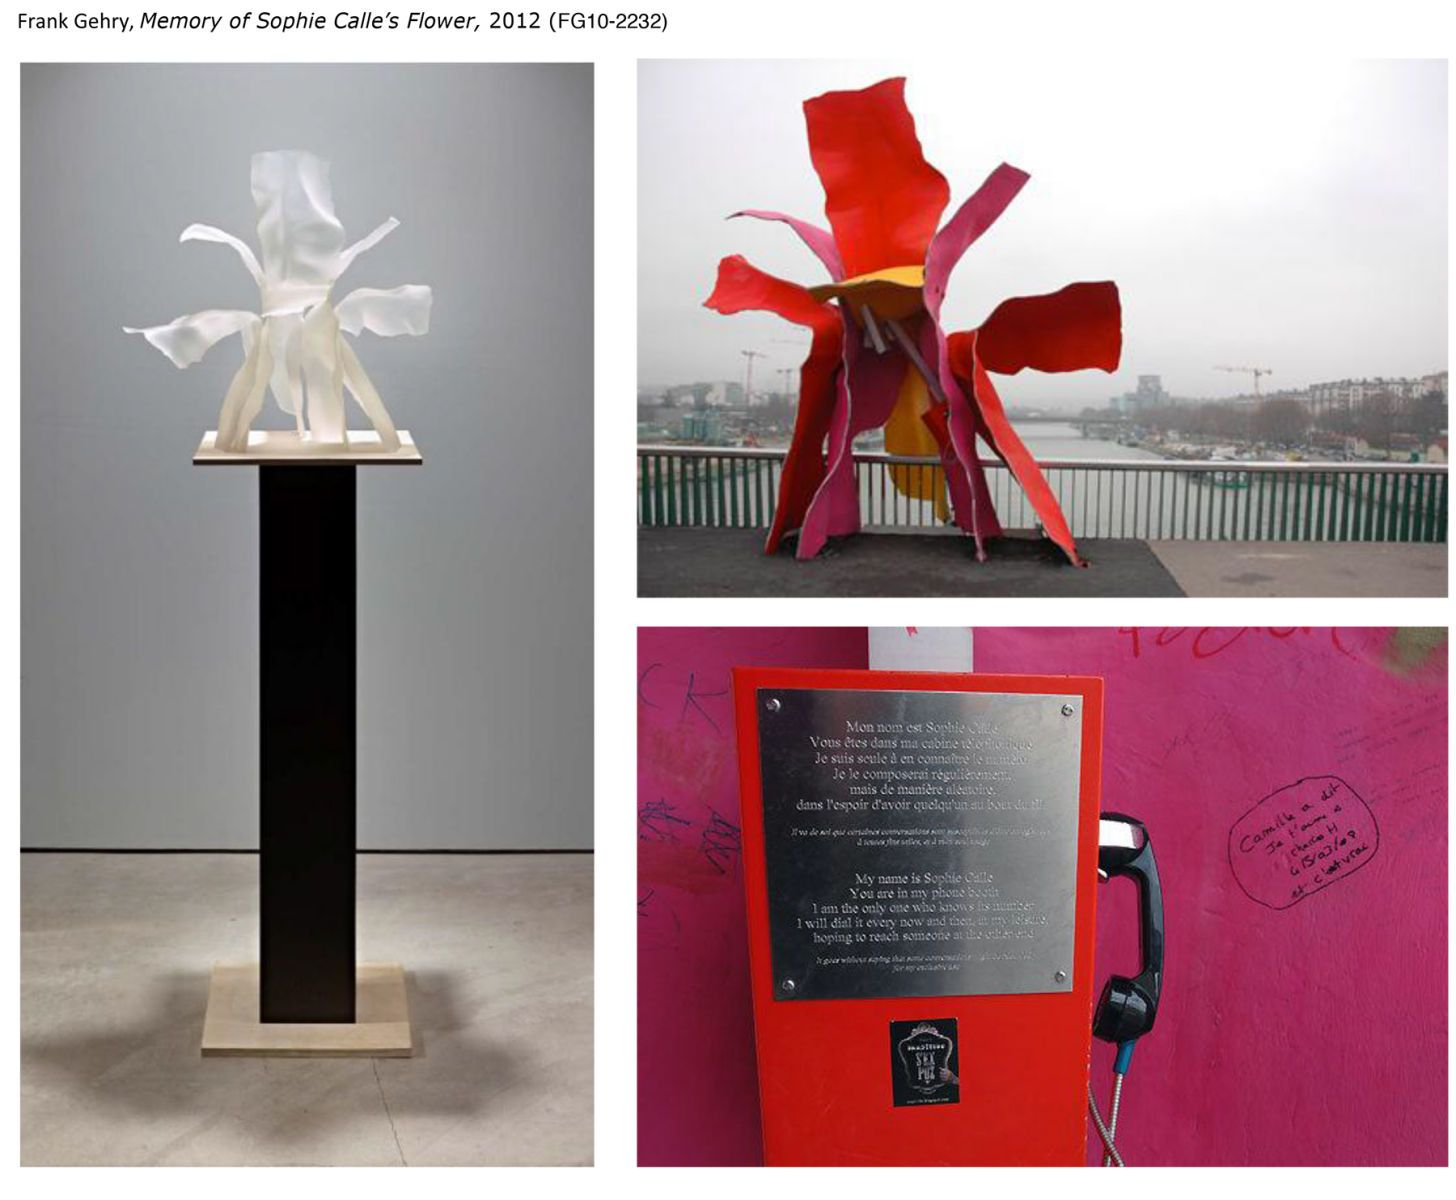 6_1architecture___memory_of_sophie_calle_s_flower.jpg